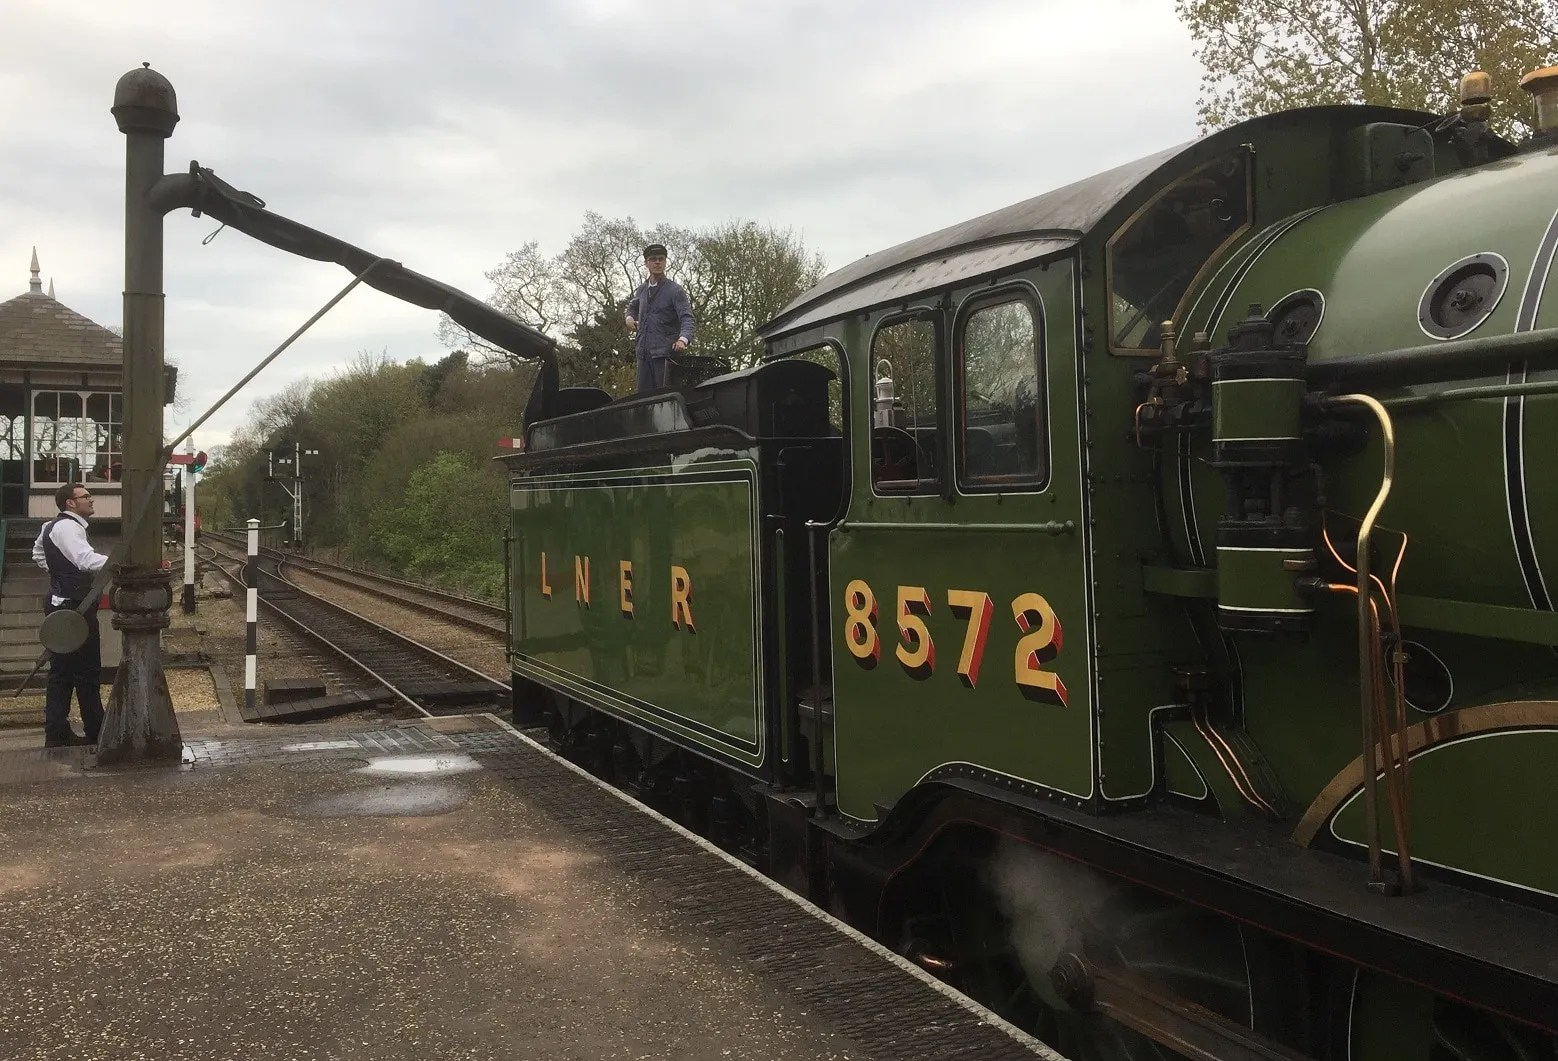 LNER B12 8572 being watered at Holt station on the North Norfolk Railway